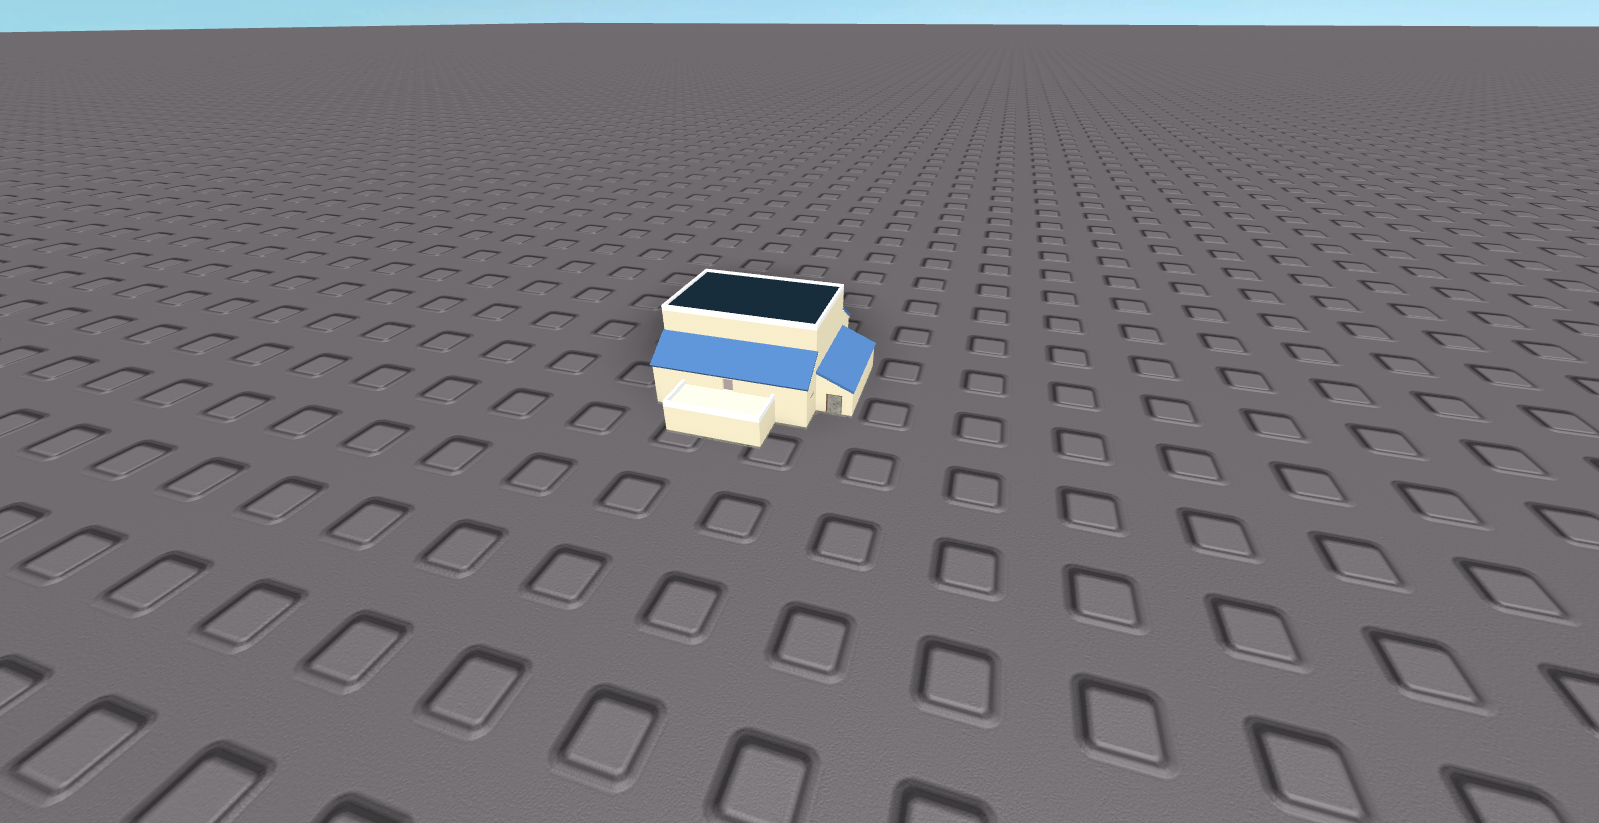 Top 10 Best Plugins On Roblox Exactly As The Tile Says In This